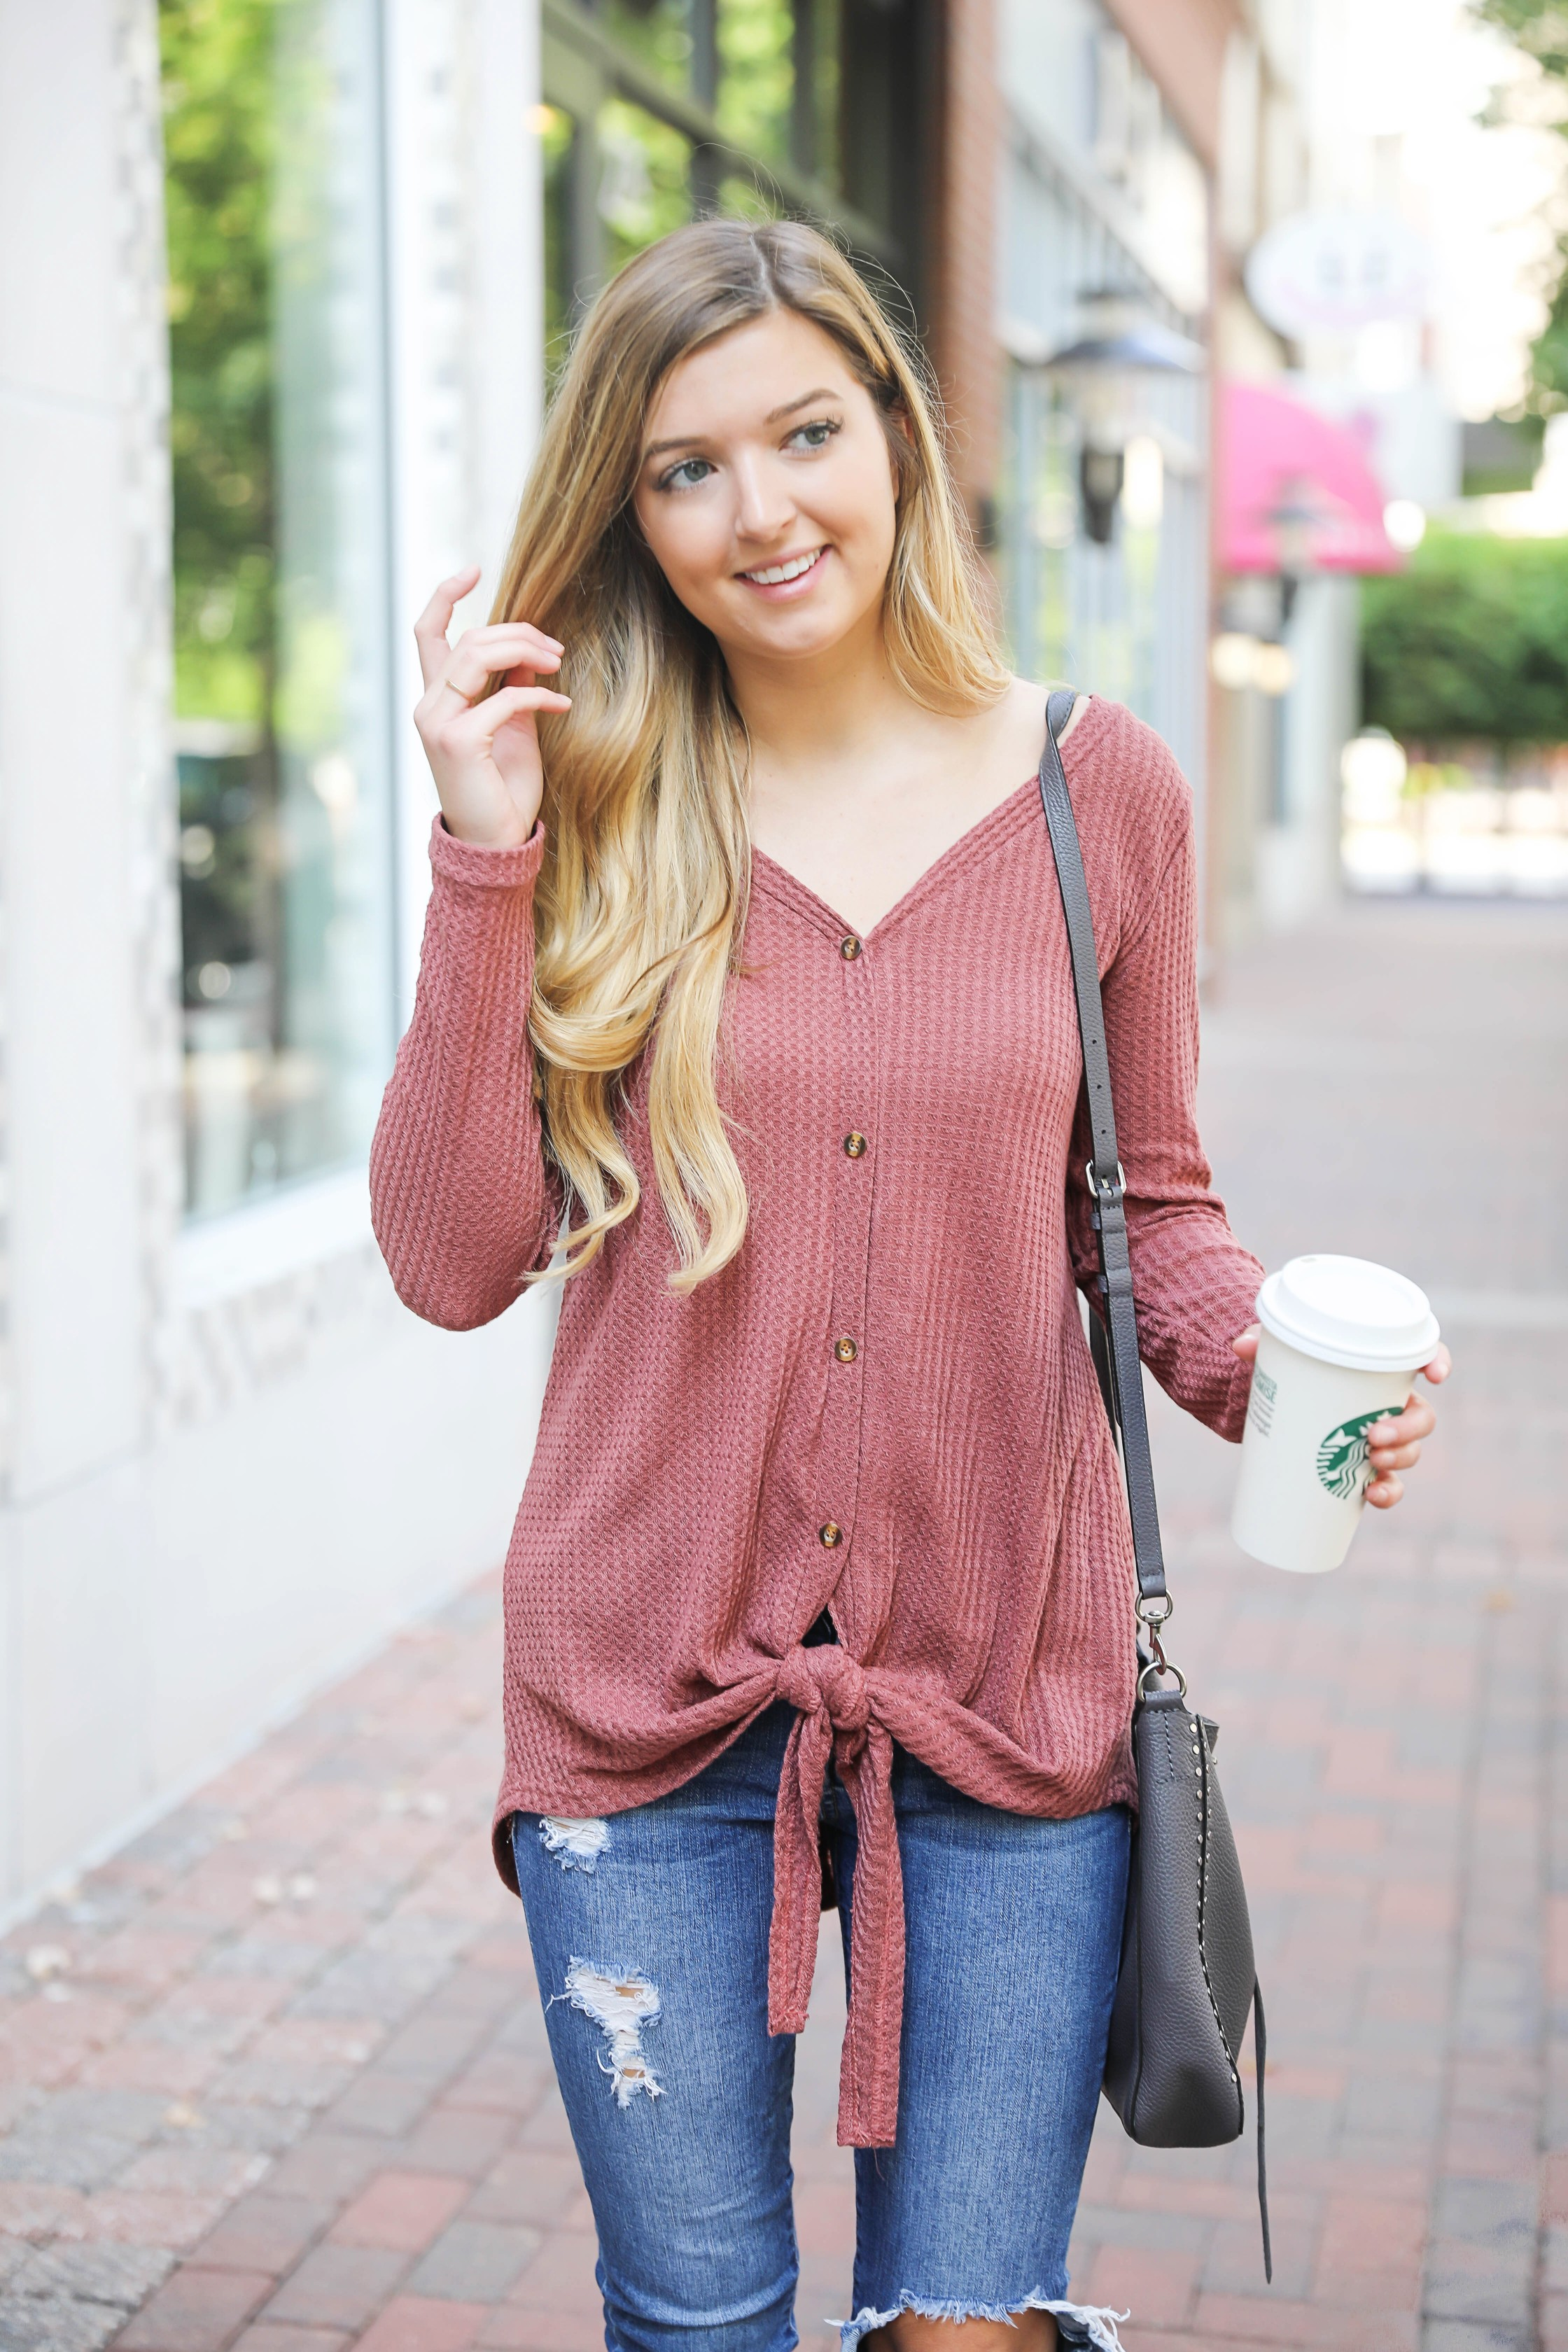 Burgundy waffle top! These waffle tops are all the rage, I love when they are tied on the end! It comes in a ton of cute fall colors. I paired mine with ripped denim jeans and this cute Rebecca Minkoff purse! Such a cute fall outfit for back to school! Details on fashion blog daily dose of charm by lauren lindmark